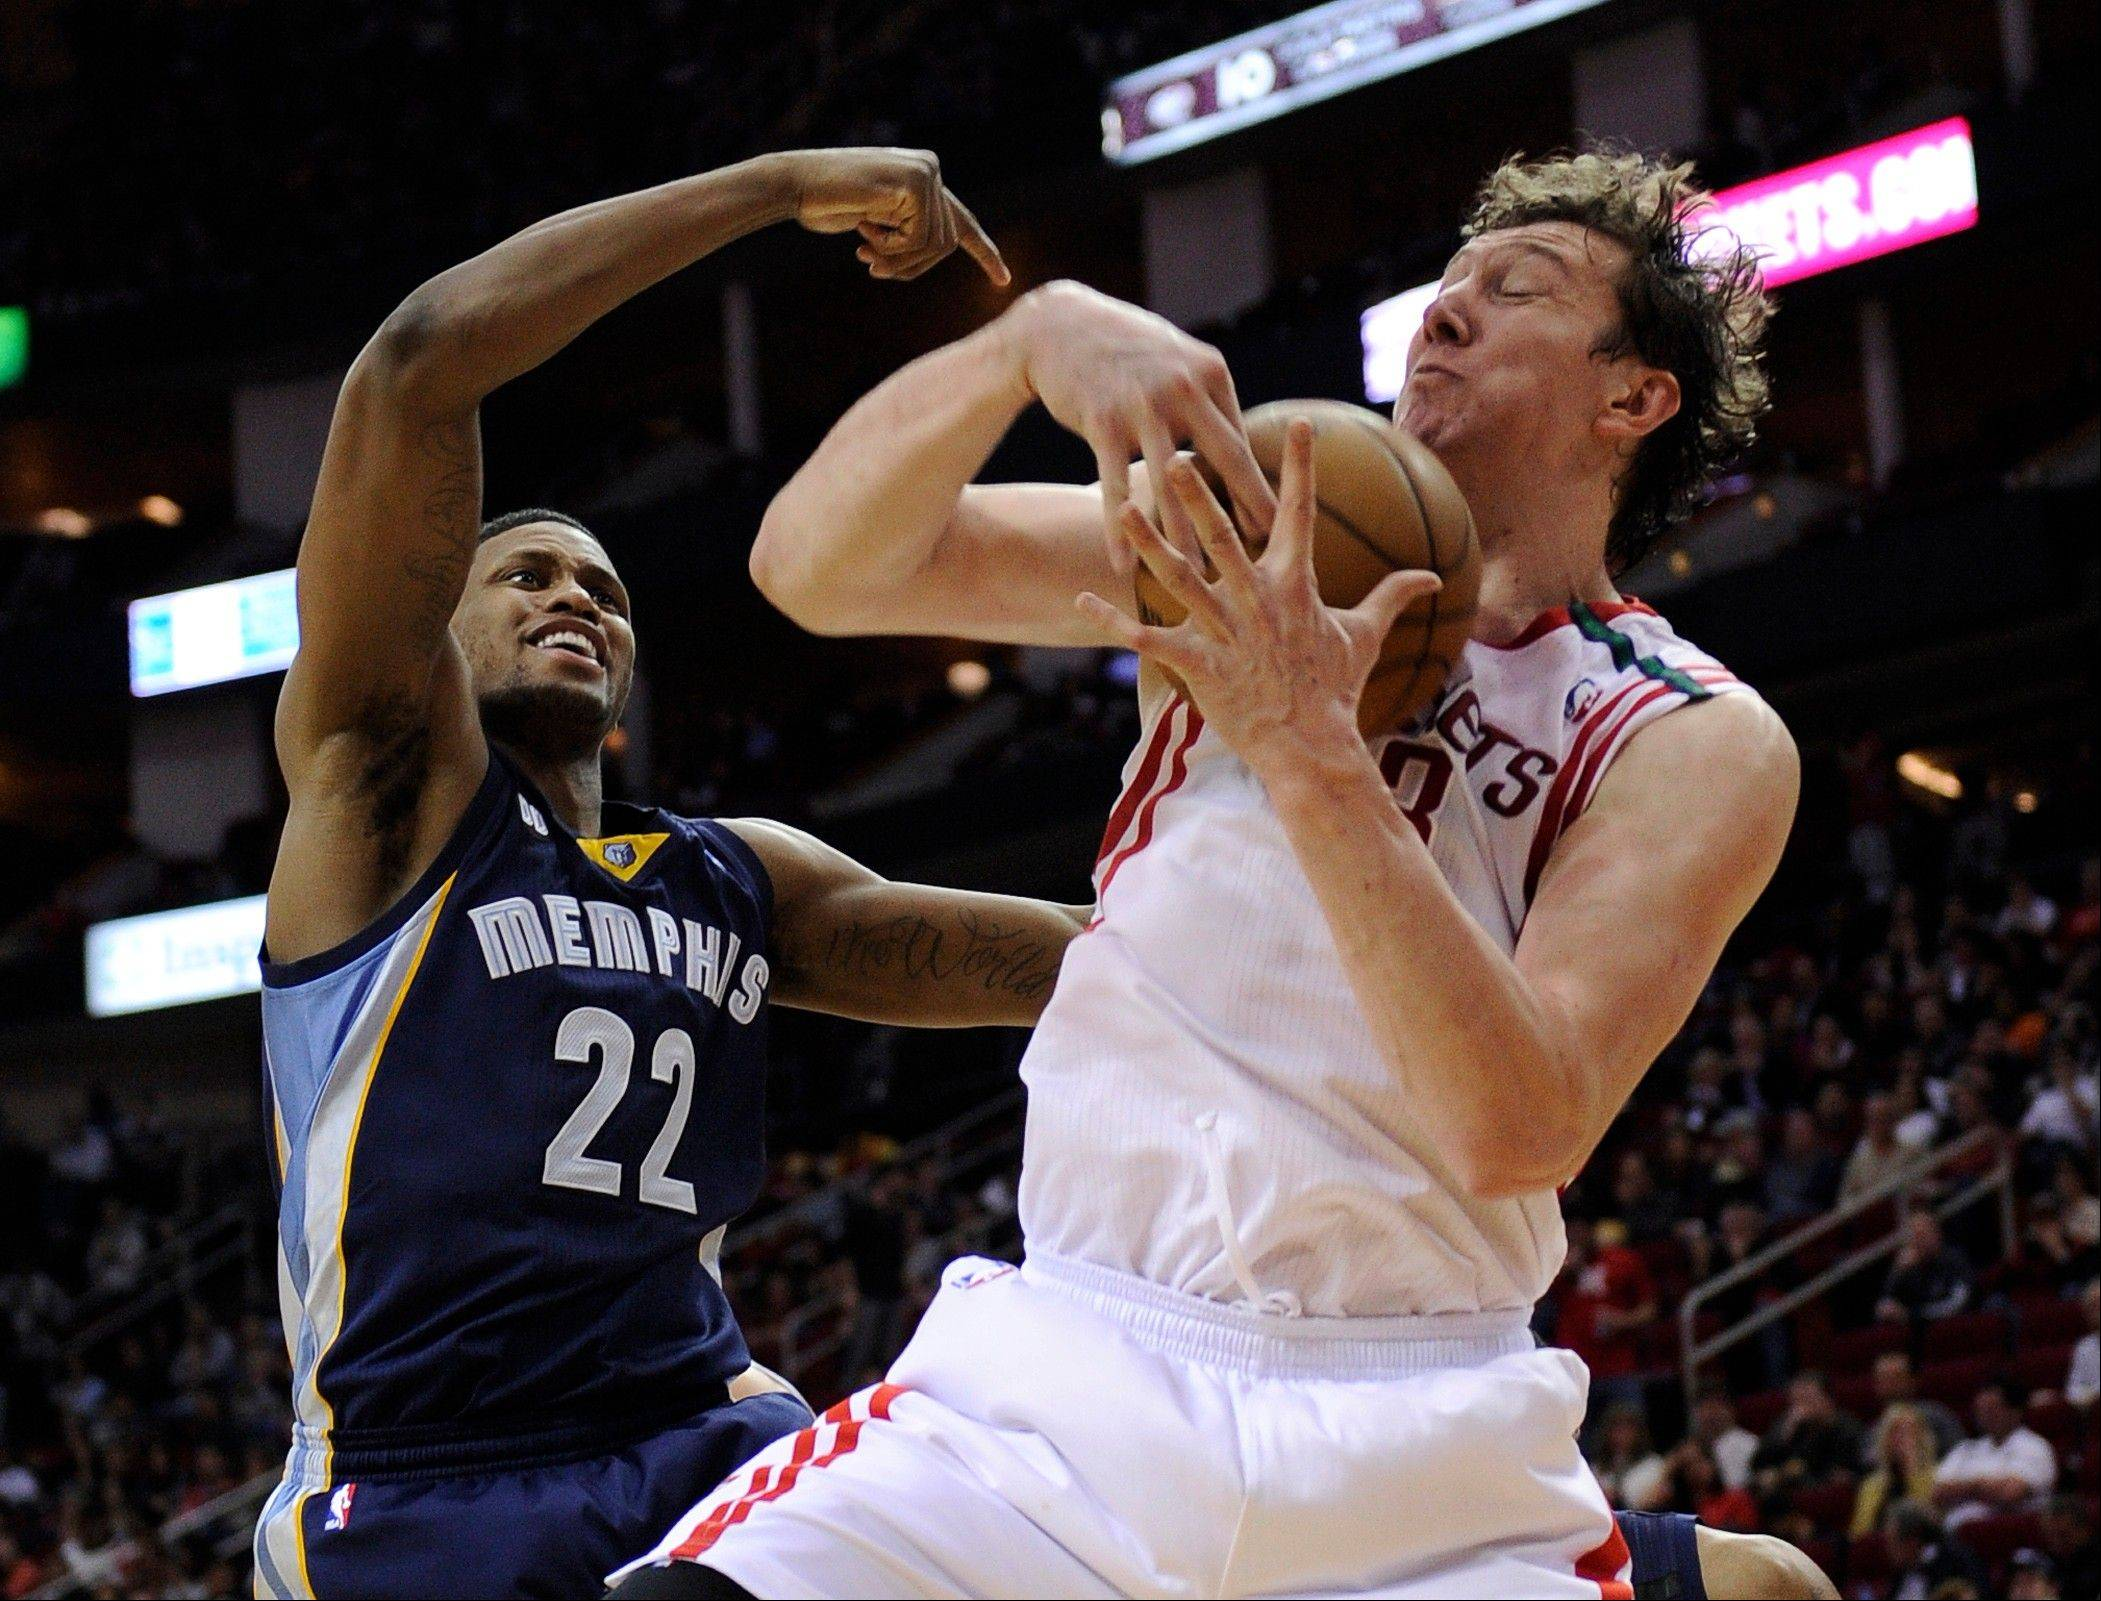 Playing better than 30 minutes a game for the Rockets, former Bull Omer Asik is averaging 11.4 rebounds and 10.6 points this season.